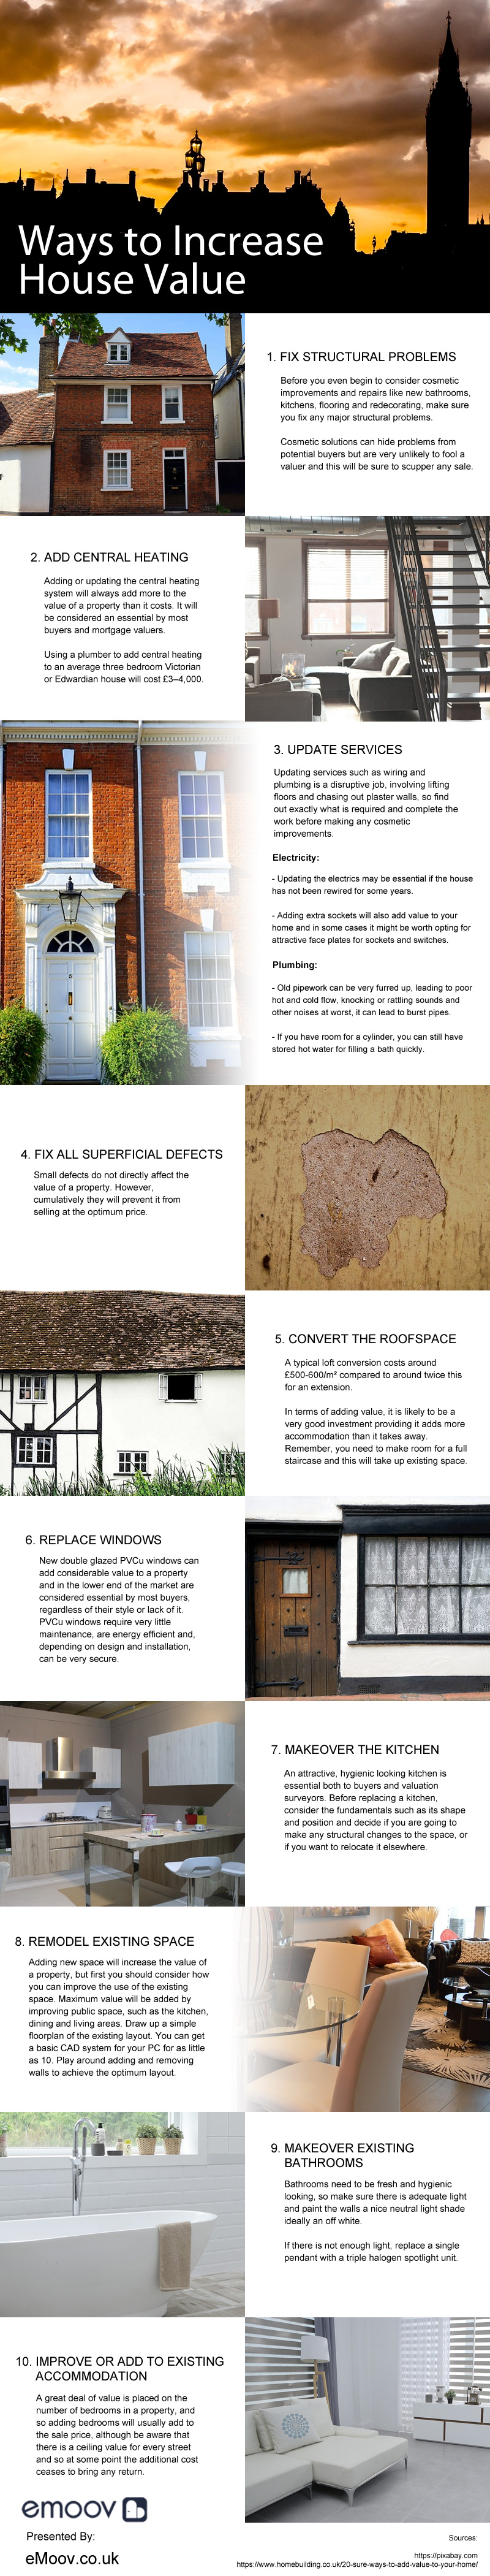 10 Steps To Increase Your House Value - Infographic